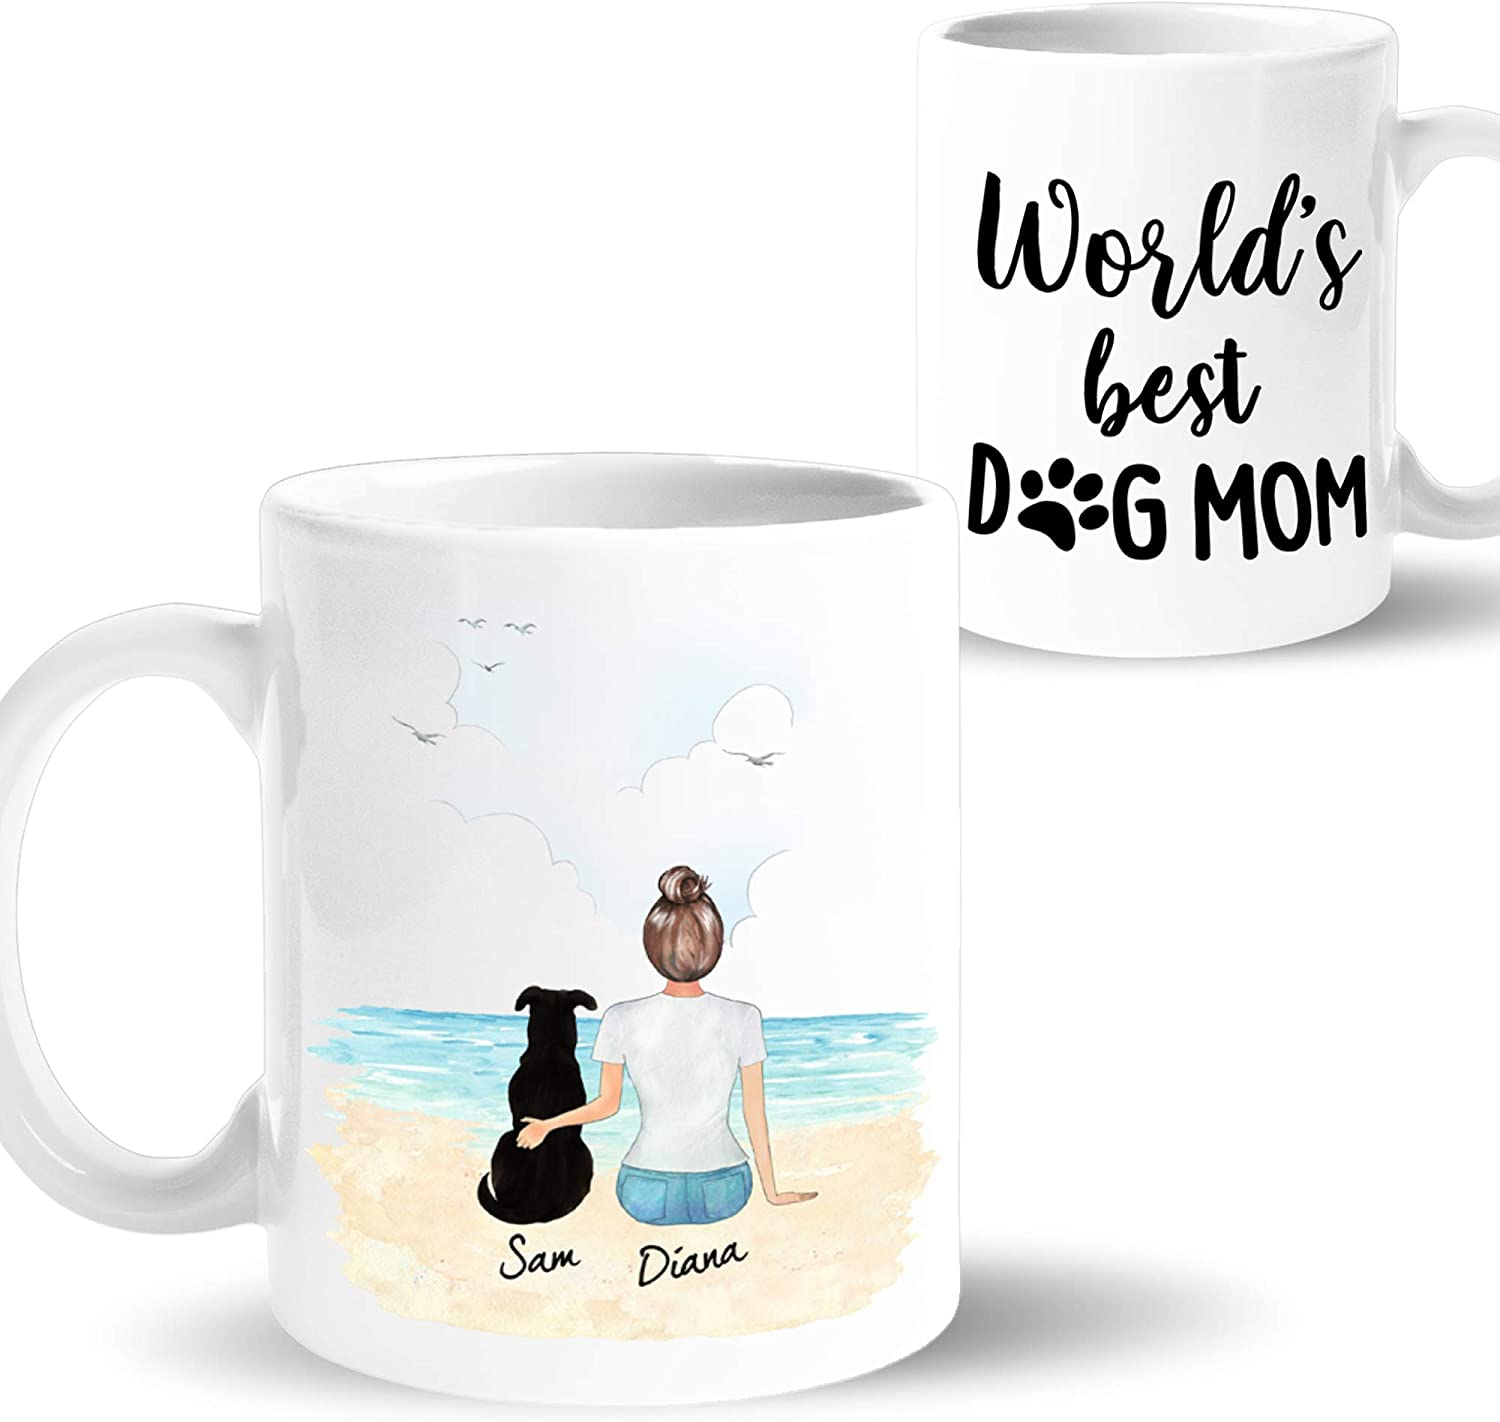 Amazon Com Personalized Dog Mom Coffee Mug Customizable Pet Name And Picture Pet Memorial Cup Custom Gift Idea For Dog Lover Women Mothers Day Christmas 11oz Beach Kitchen Dining